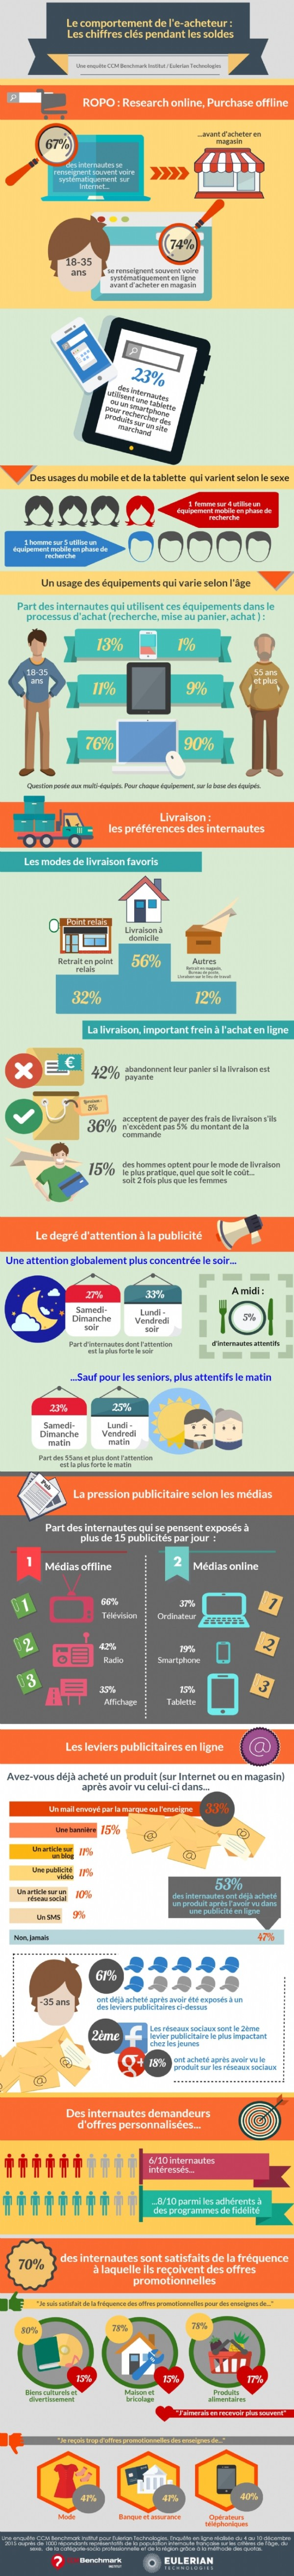 ecommerce-comportements-acheteurs-france-2016